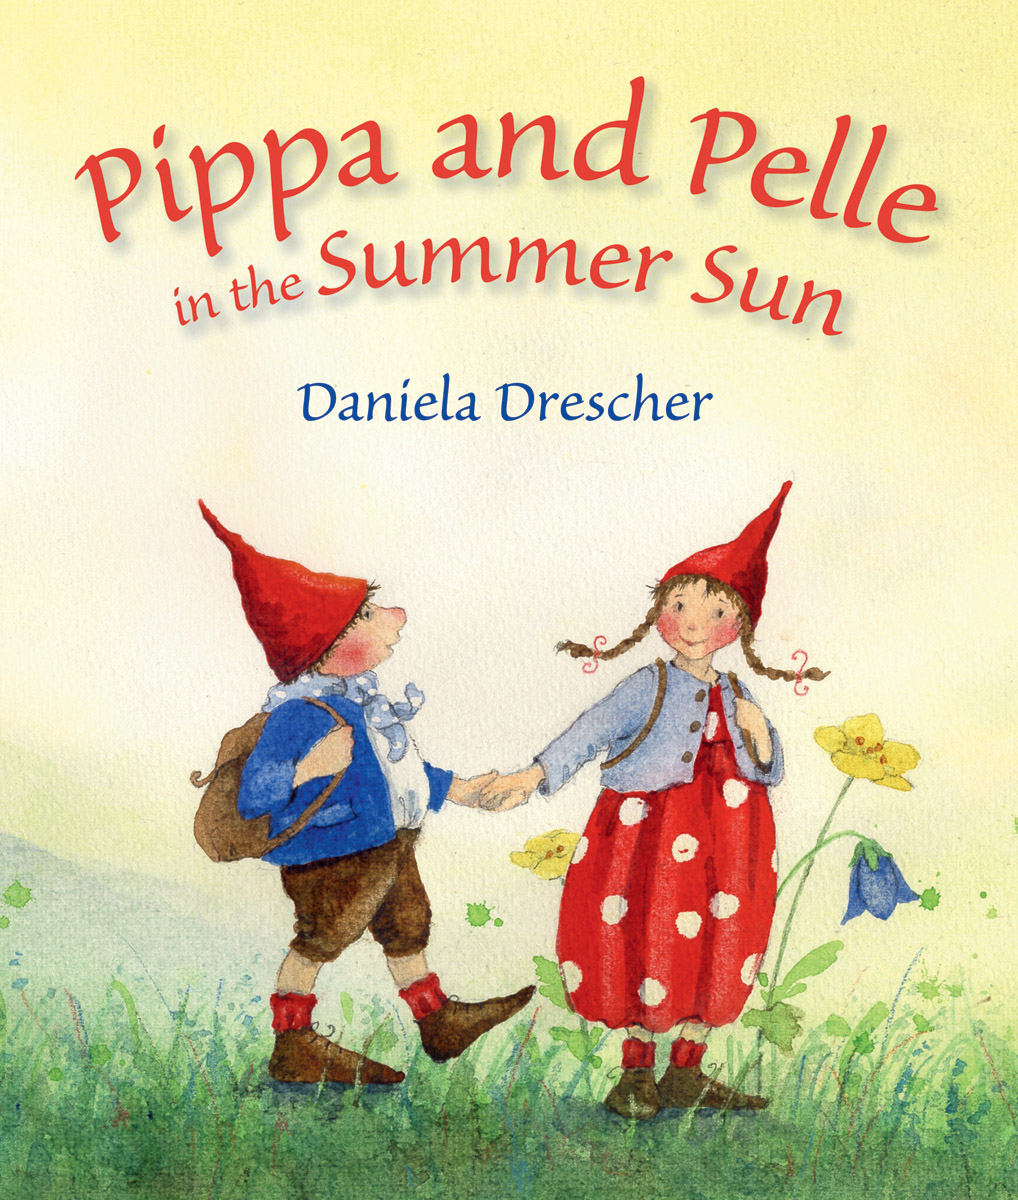 Pippa and Pelle in the Summer Sun - Floris Books